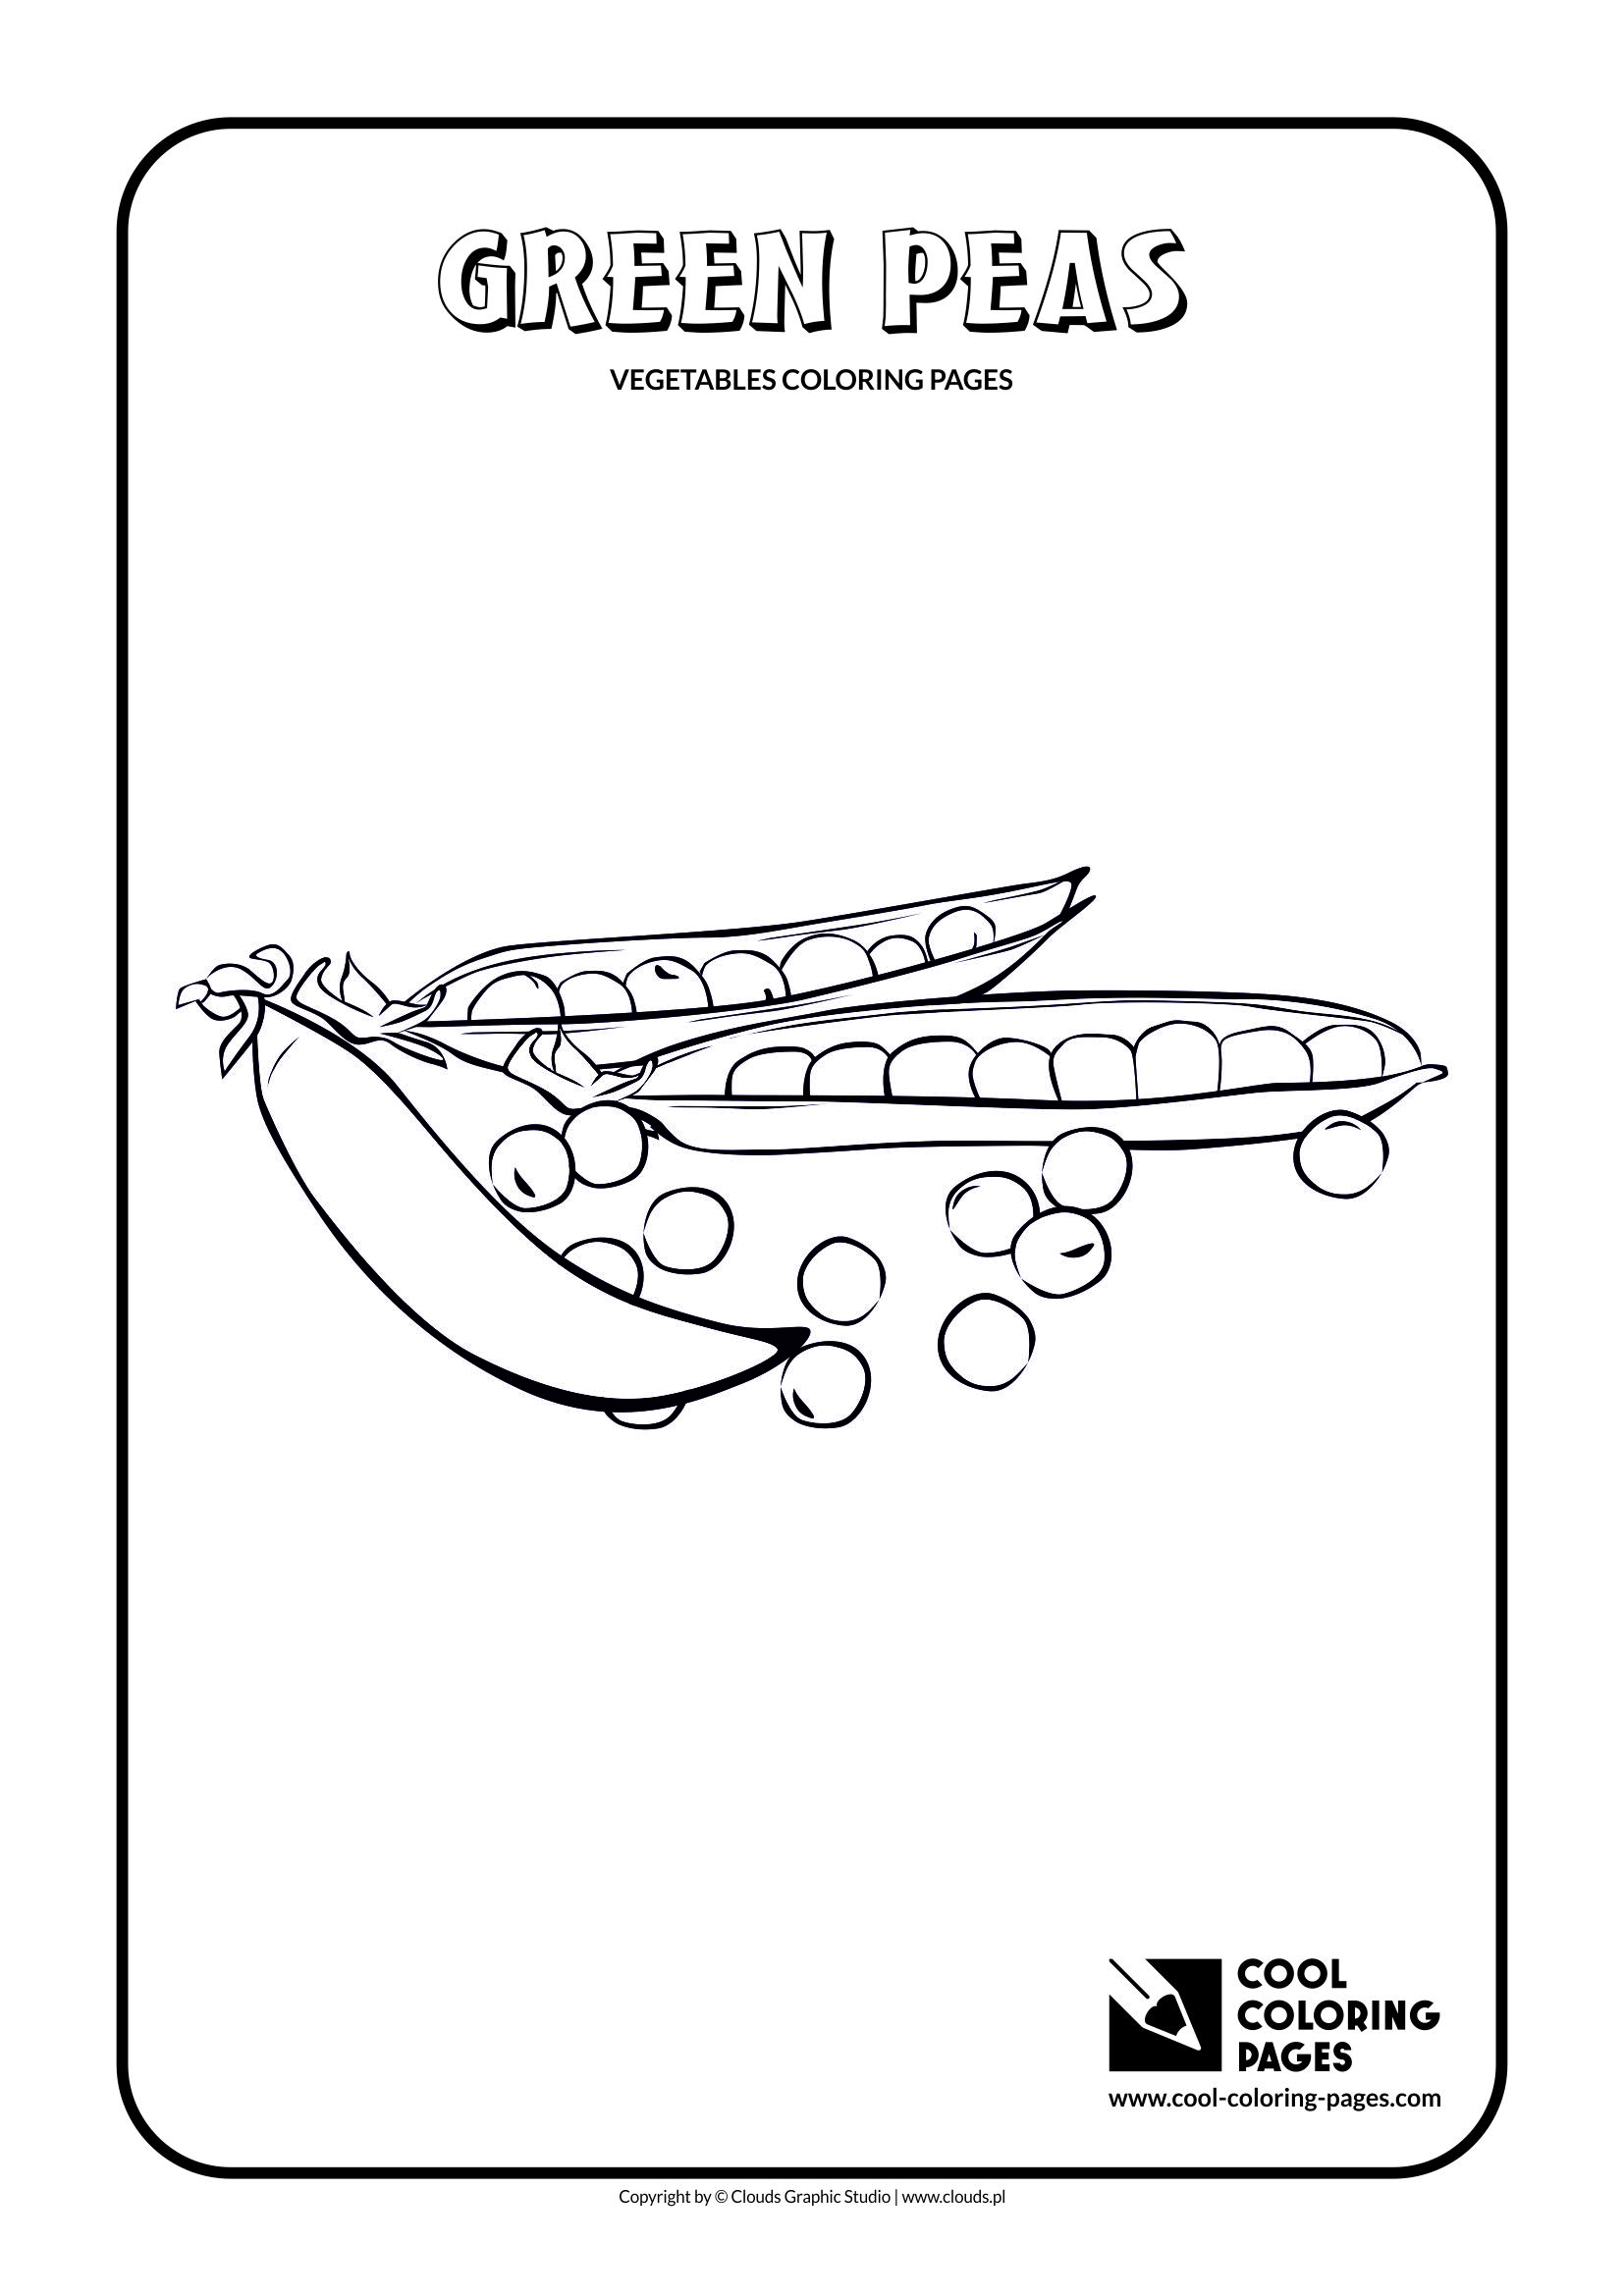 green peas coloring page cool coloring pages